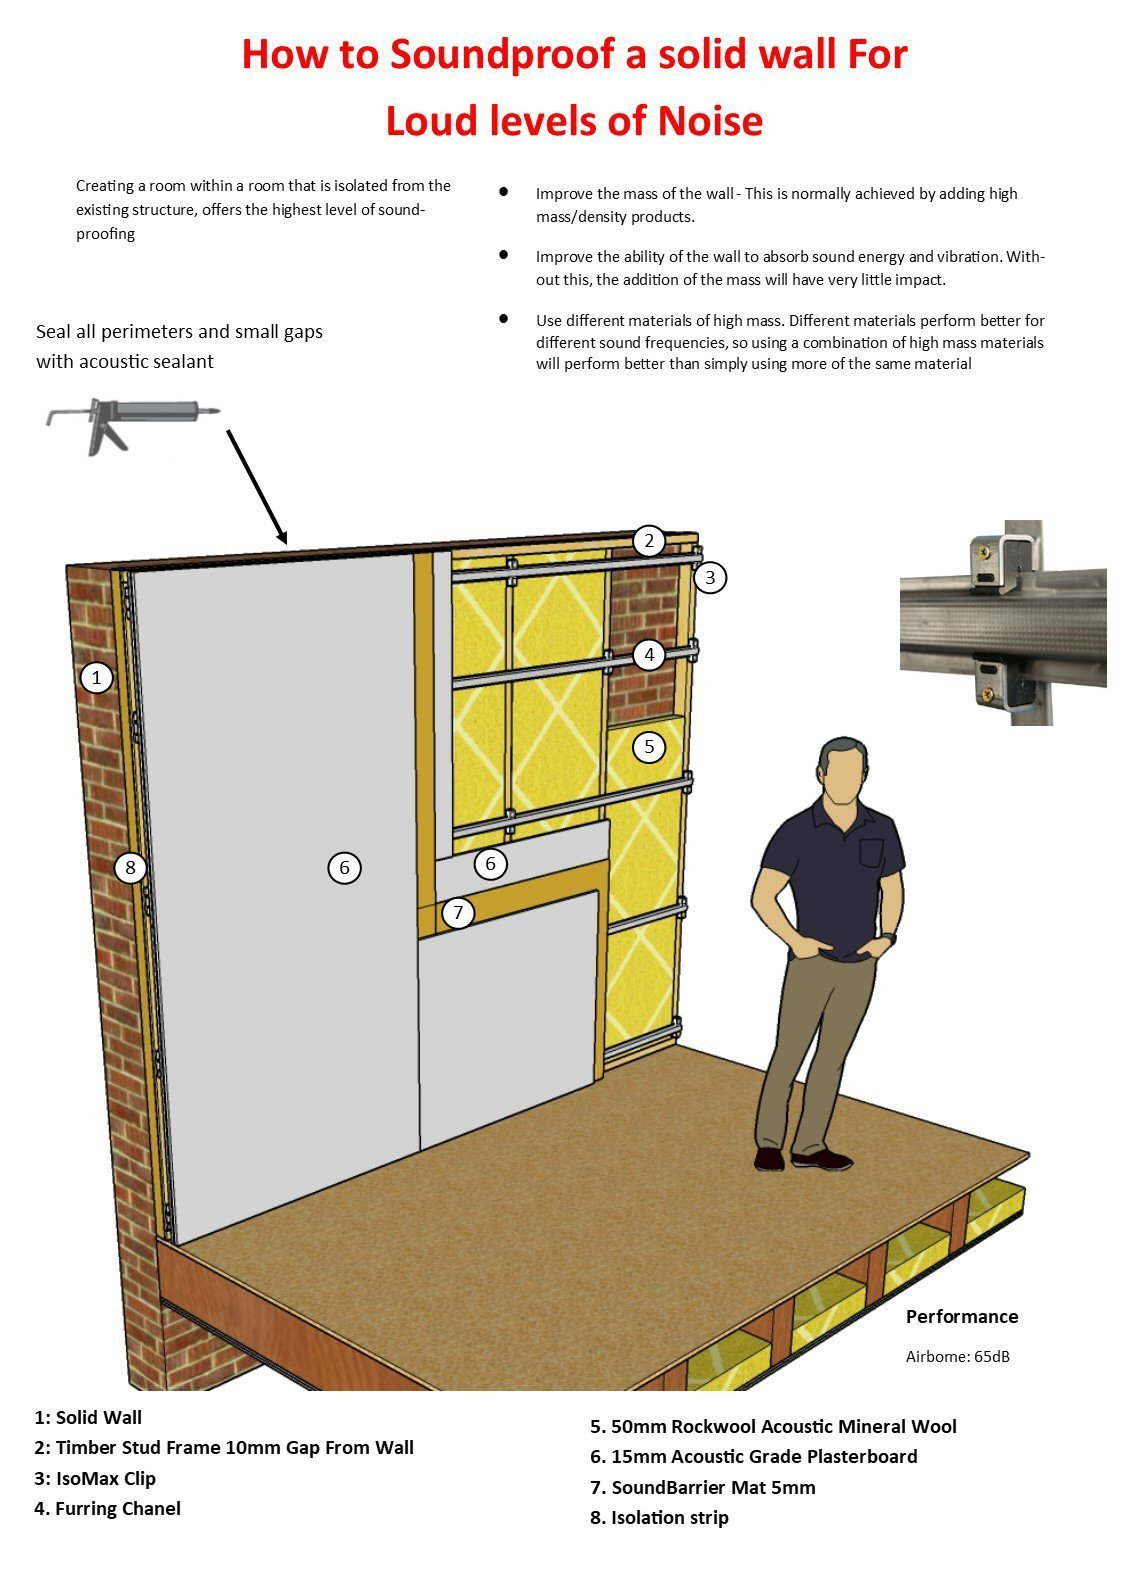 Soundproofing guide and help - How to soundproof your apartment ...